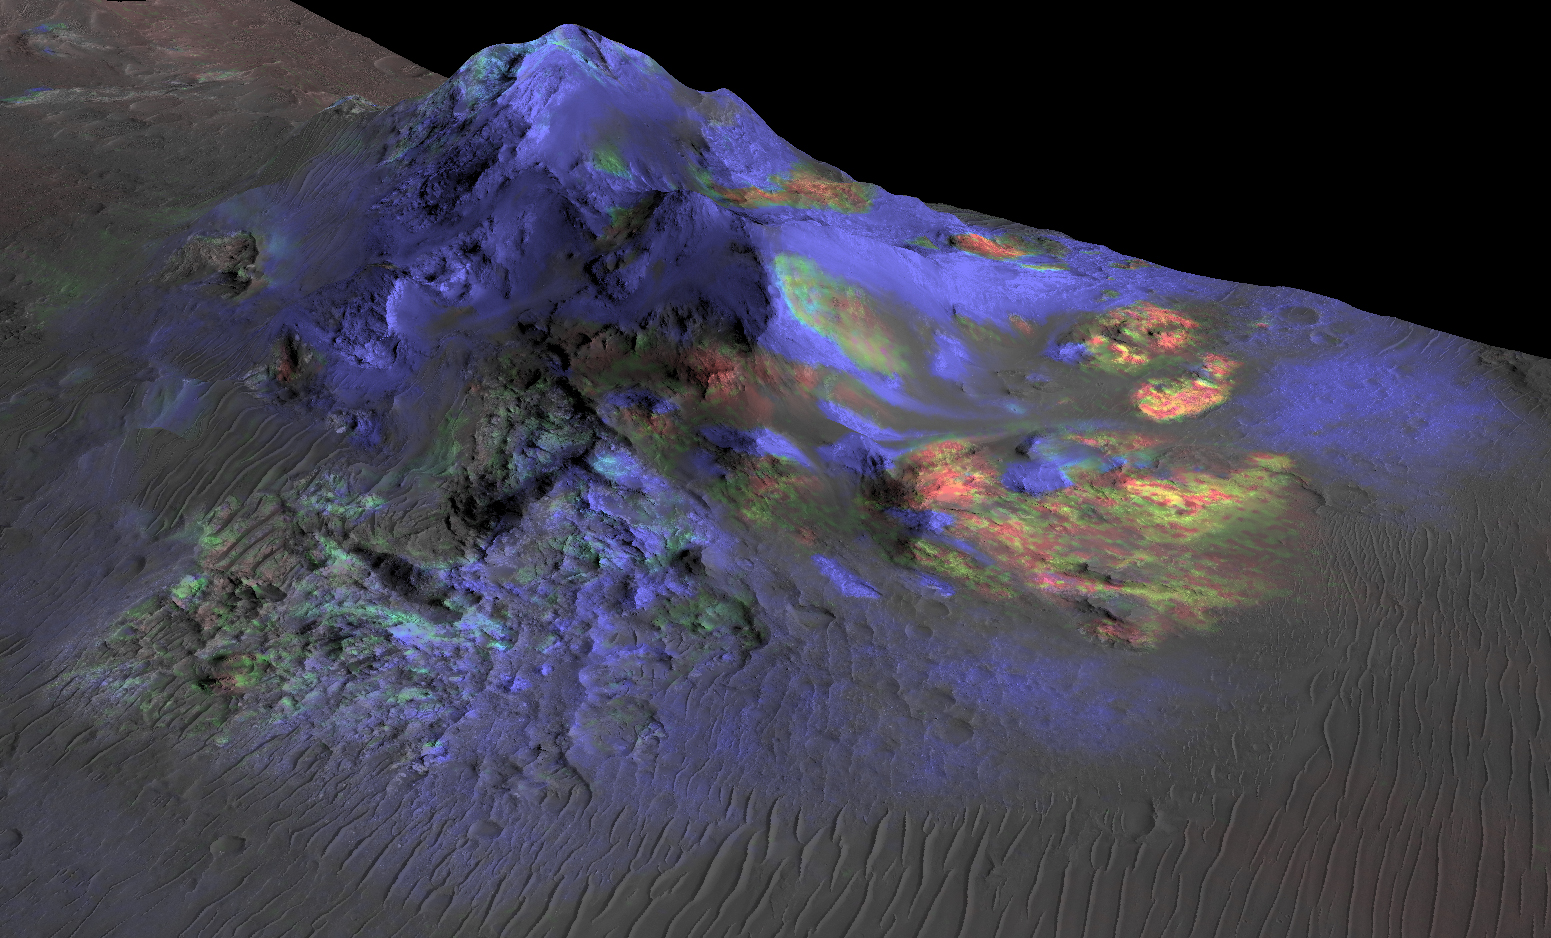 Mars-MRO-CRISM-Impact-Crater-Glass-pia19673-full